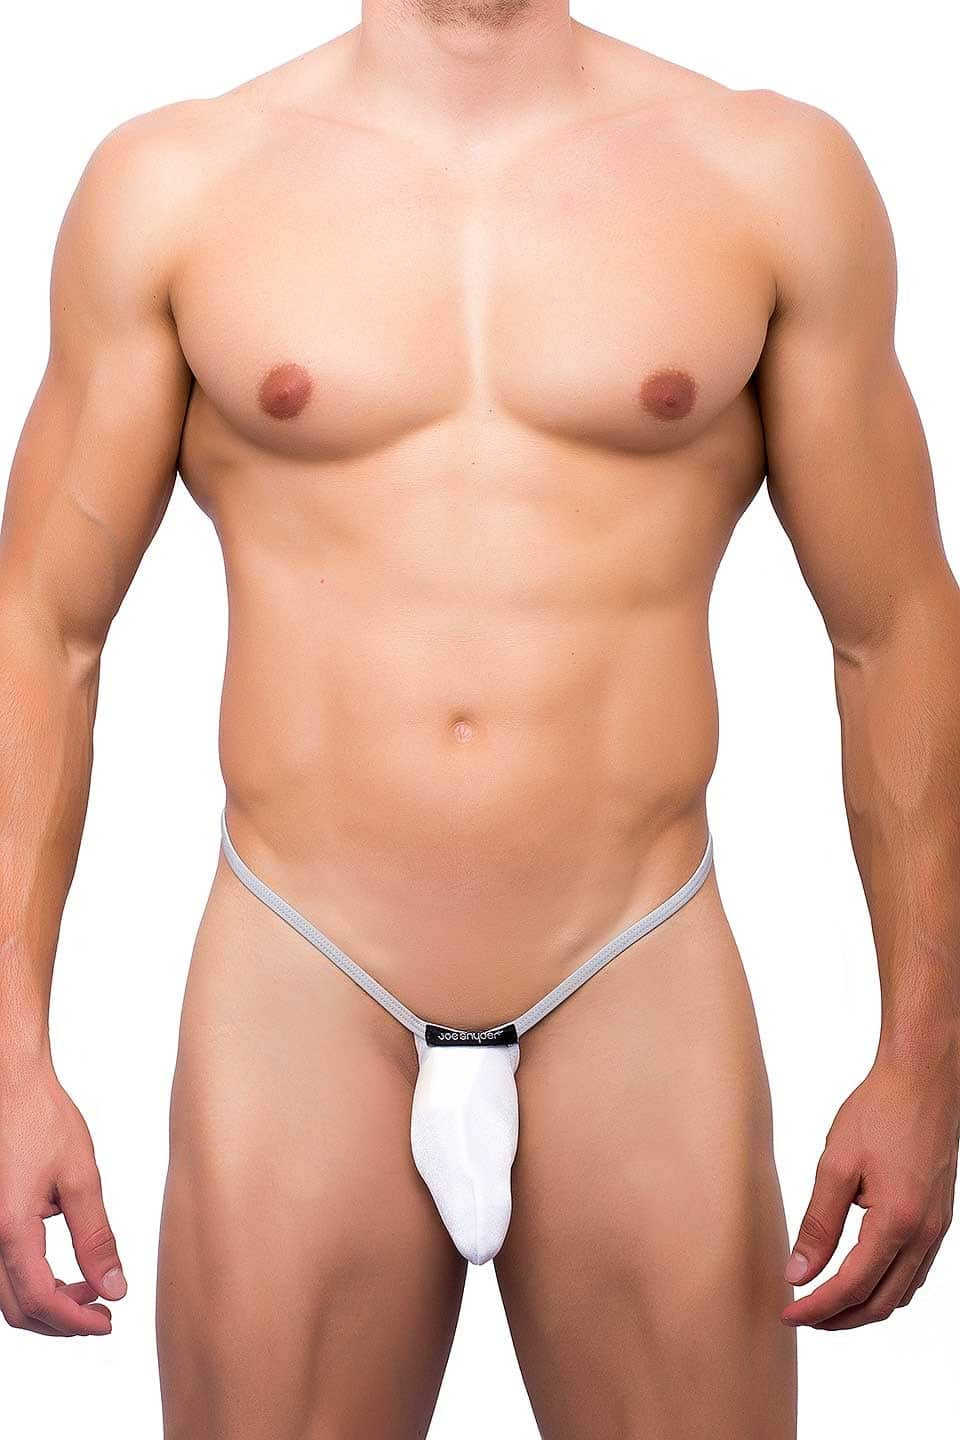 Joe Snyder Joe Snyder Sock It Men's G-String Men's Designer Underwear